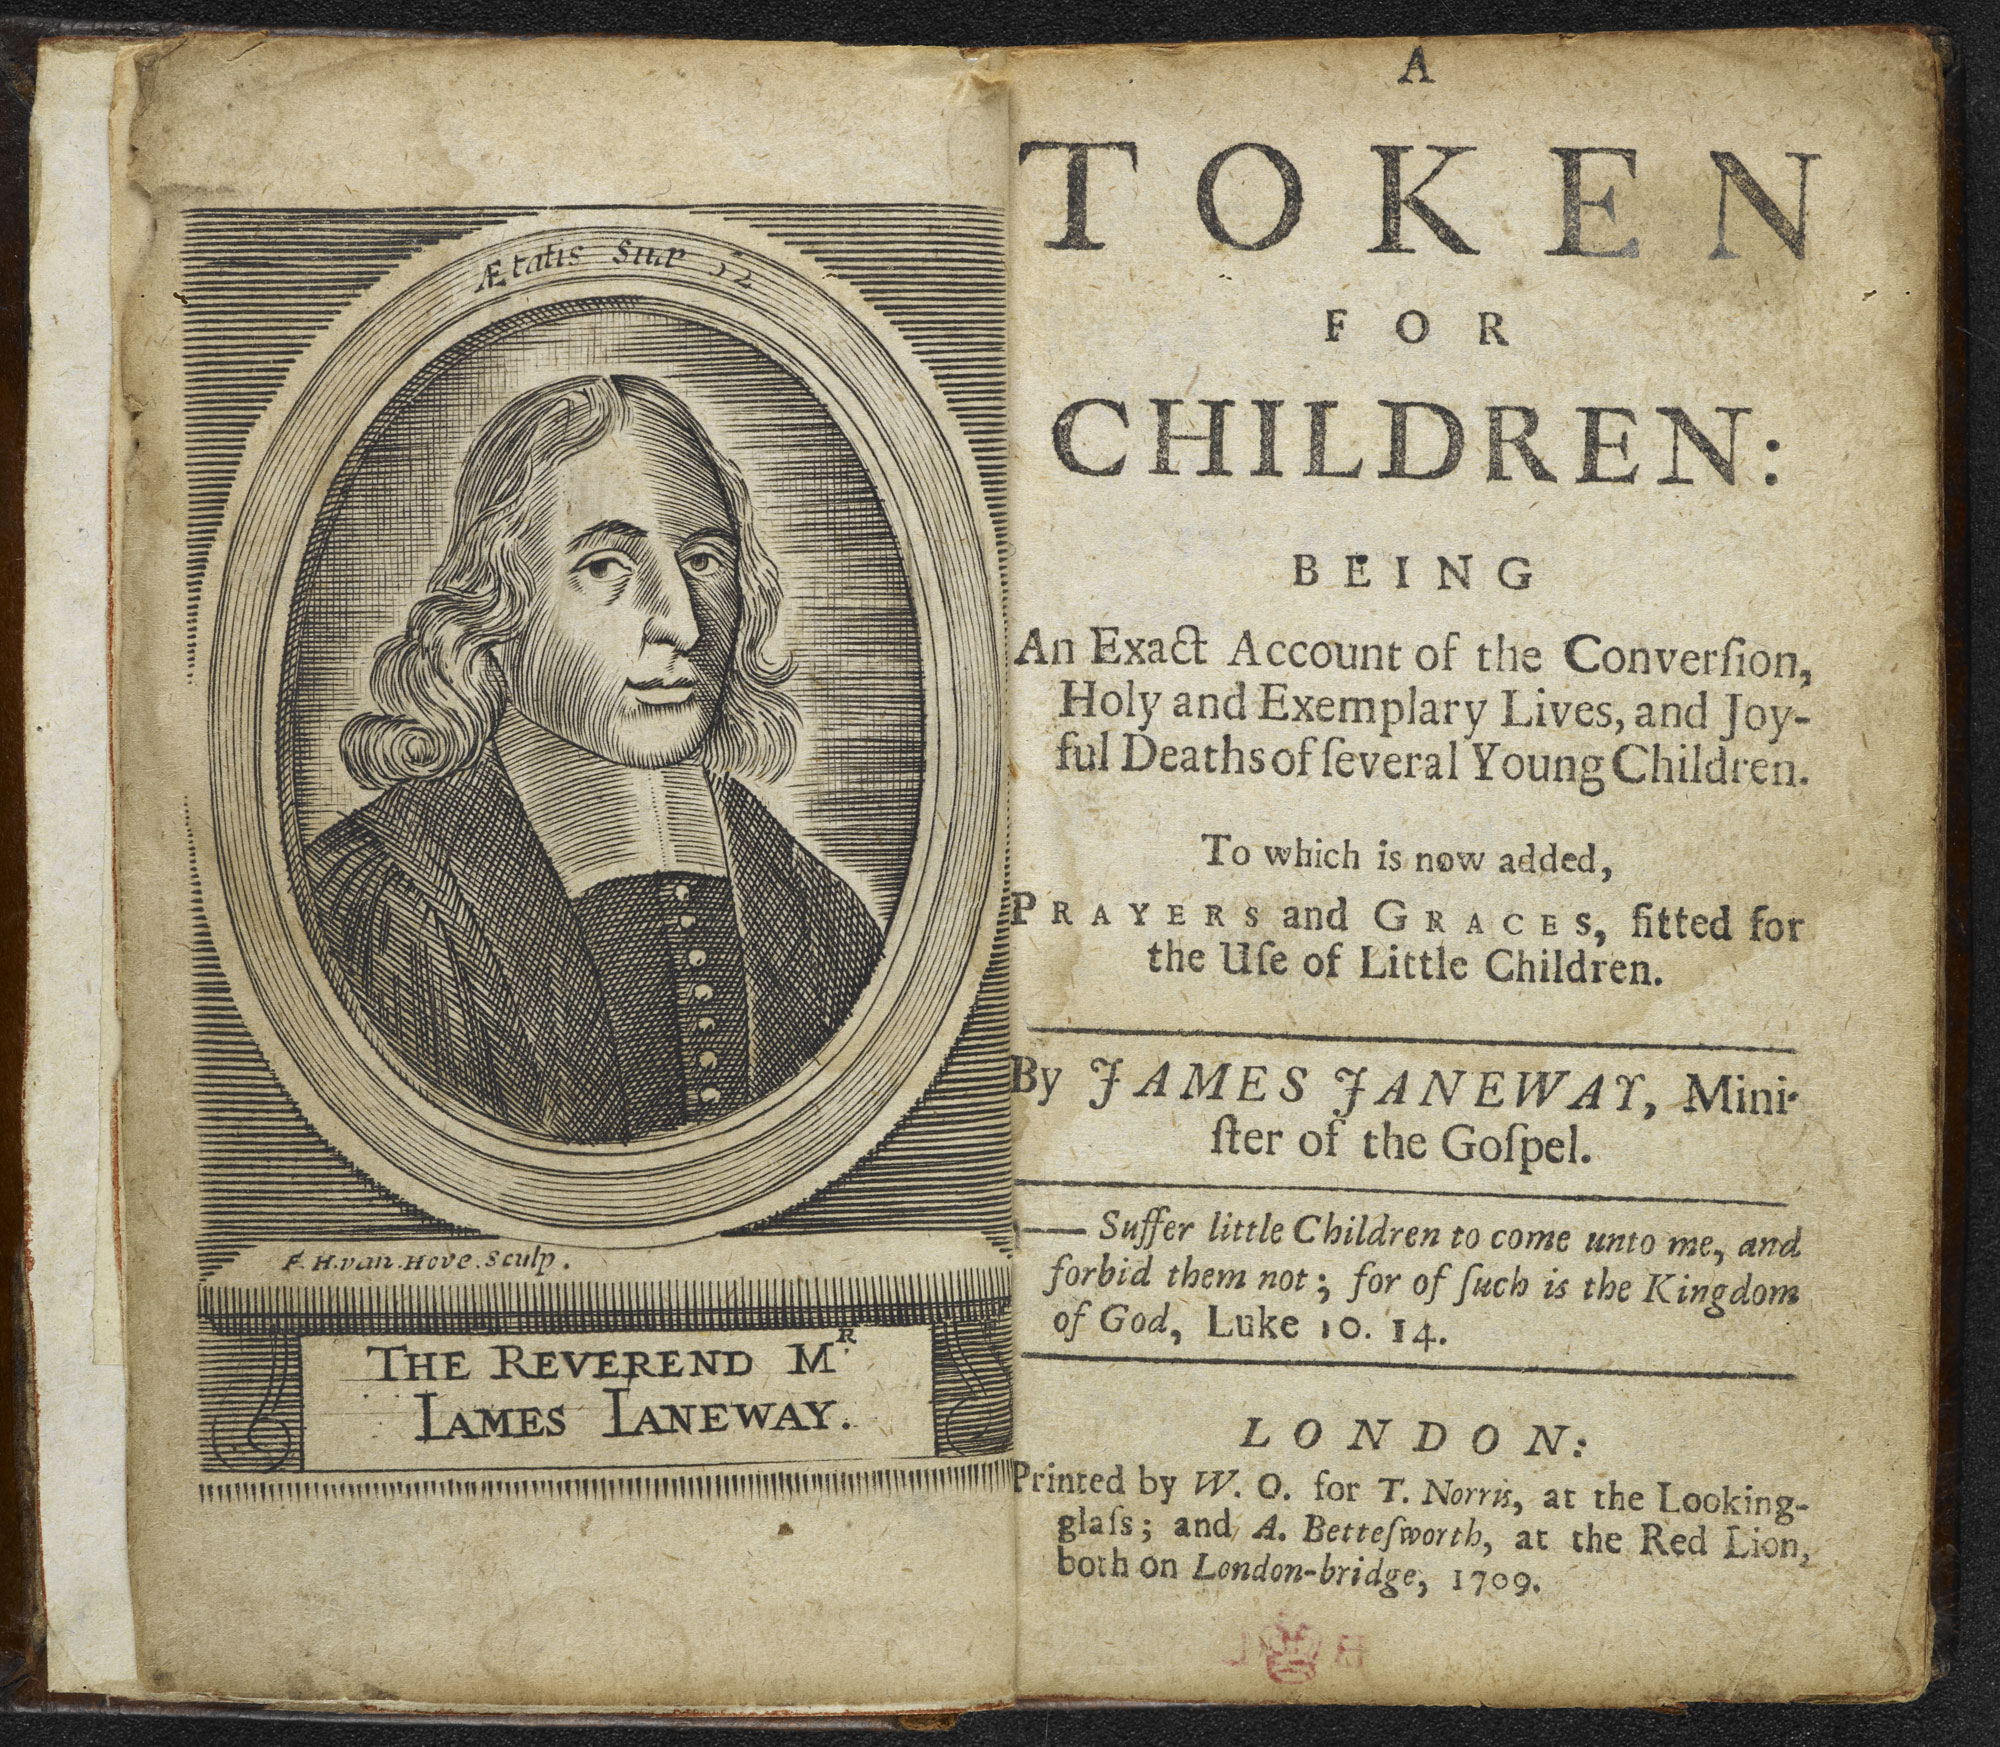 A Token for Children [page: frontispiece and title page]